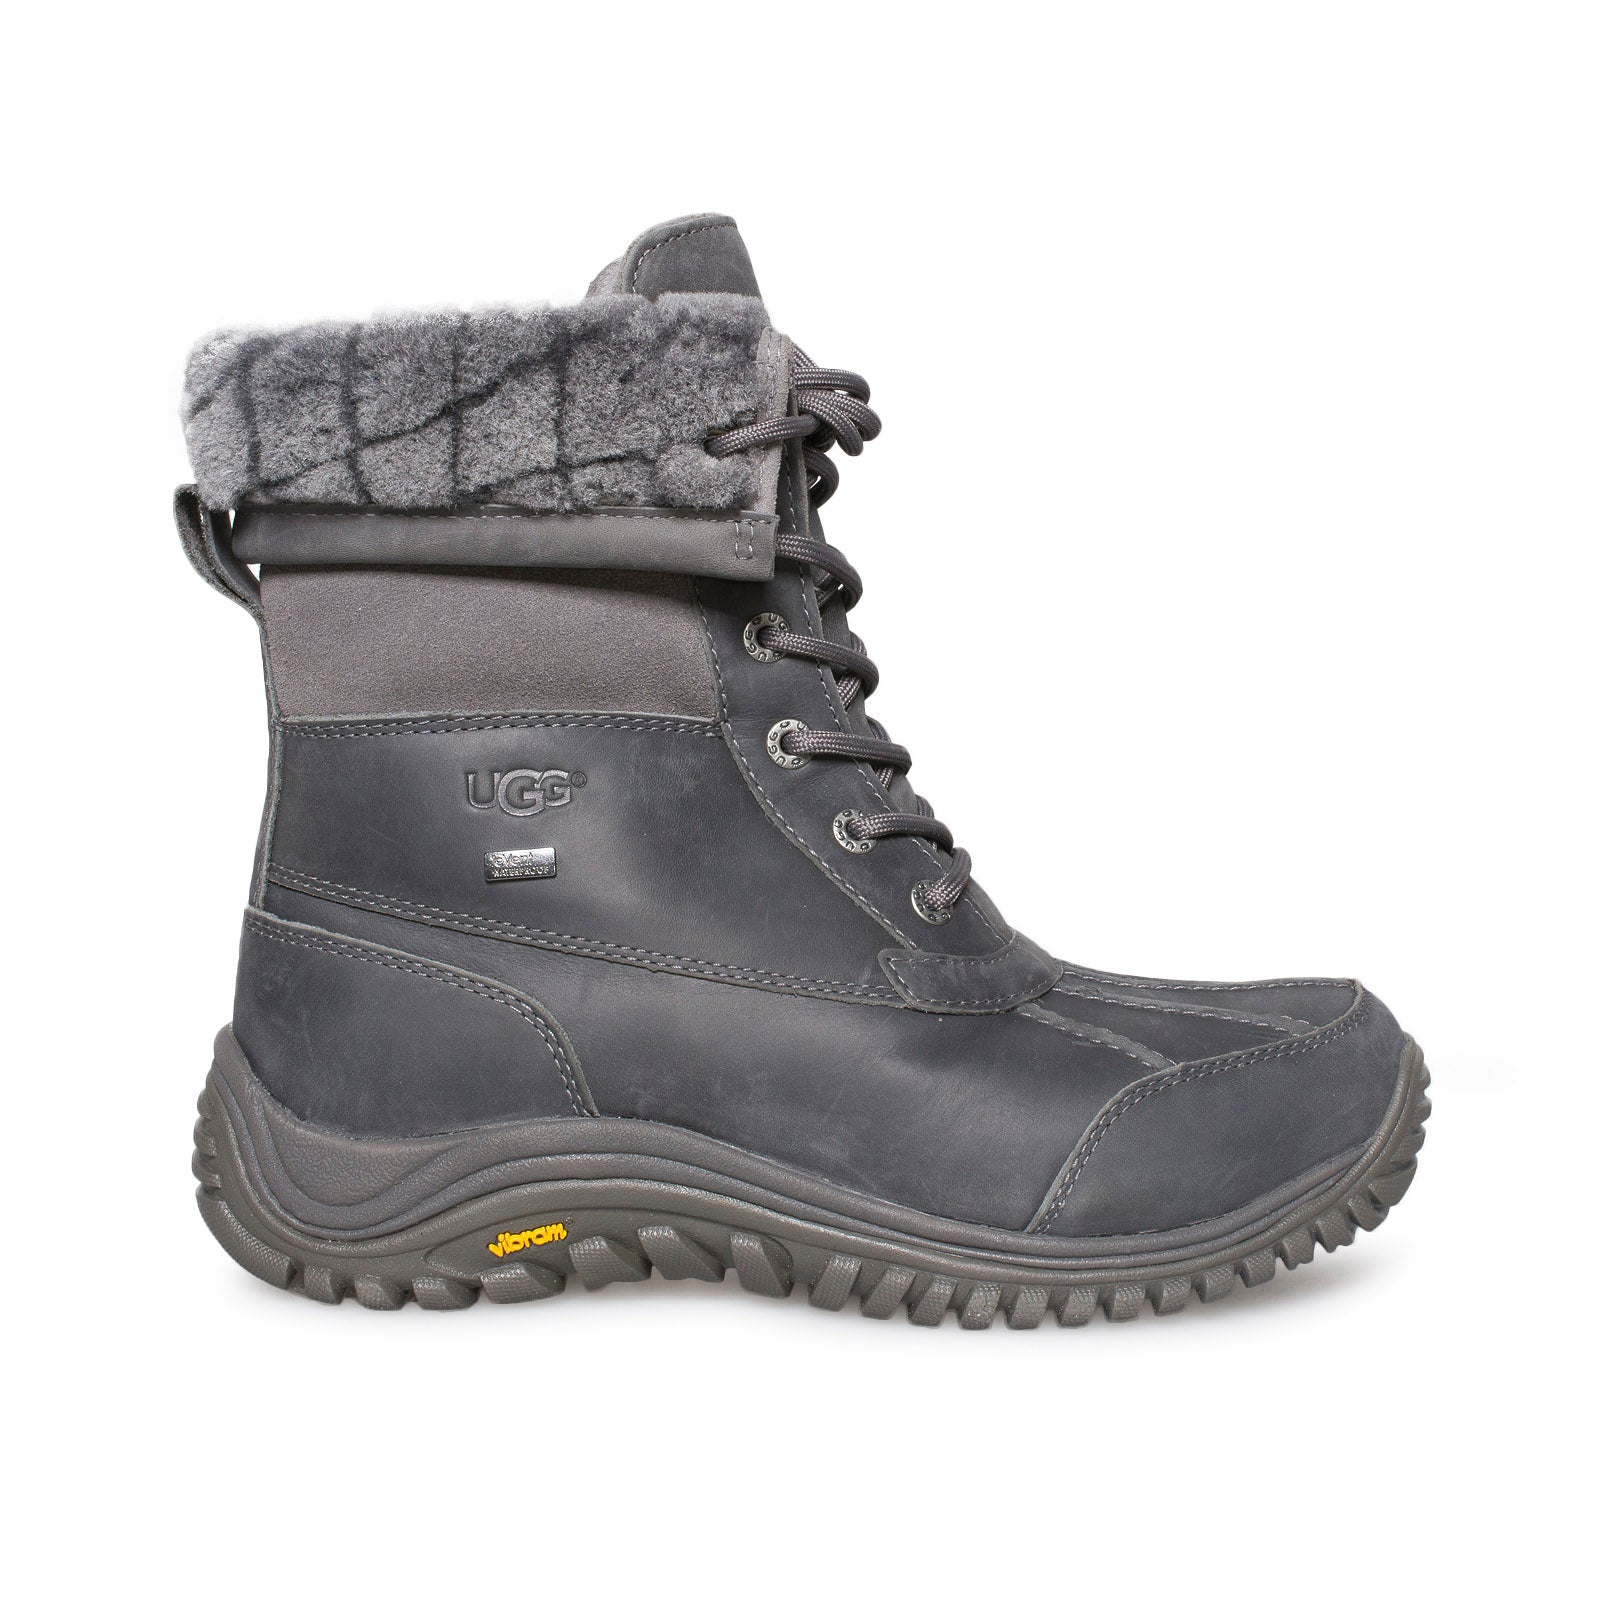 f38f22862b9 UGG Adirondack II Luxe Quilt Grey Boots